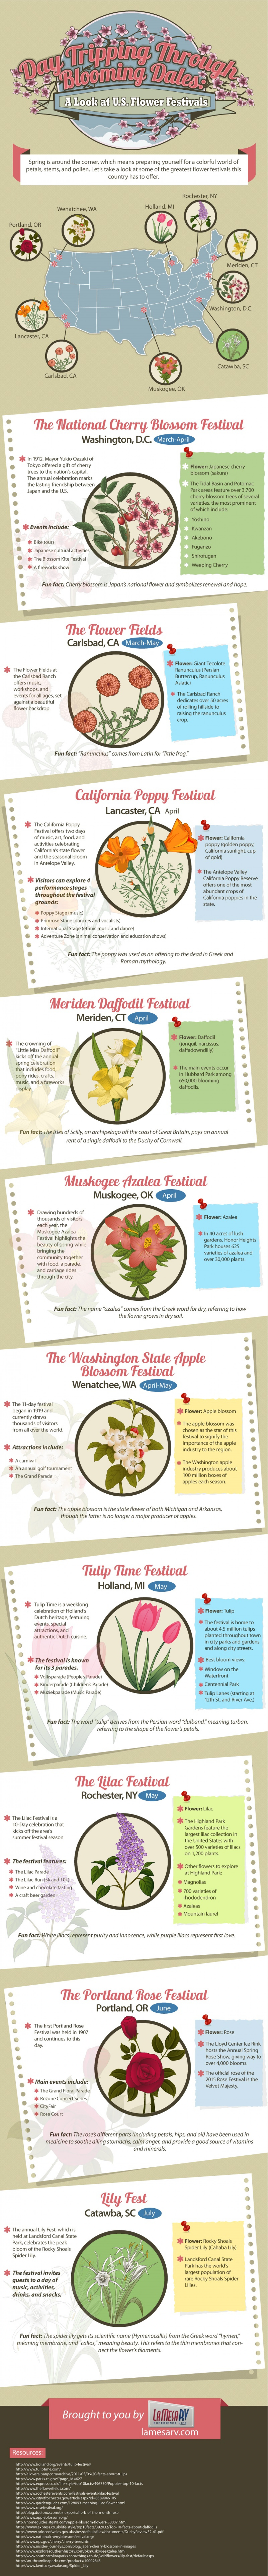 Popular U.S. Flower Festivals to See This Spring Infographic